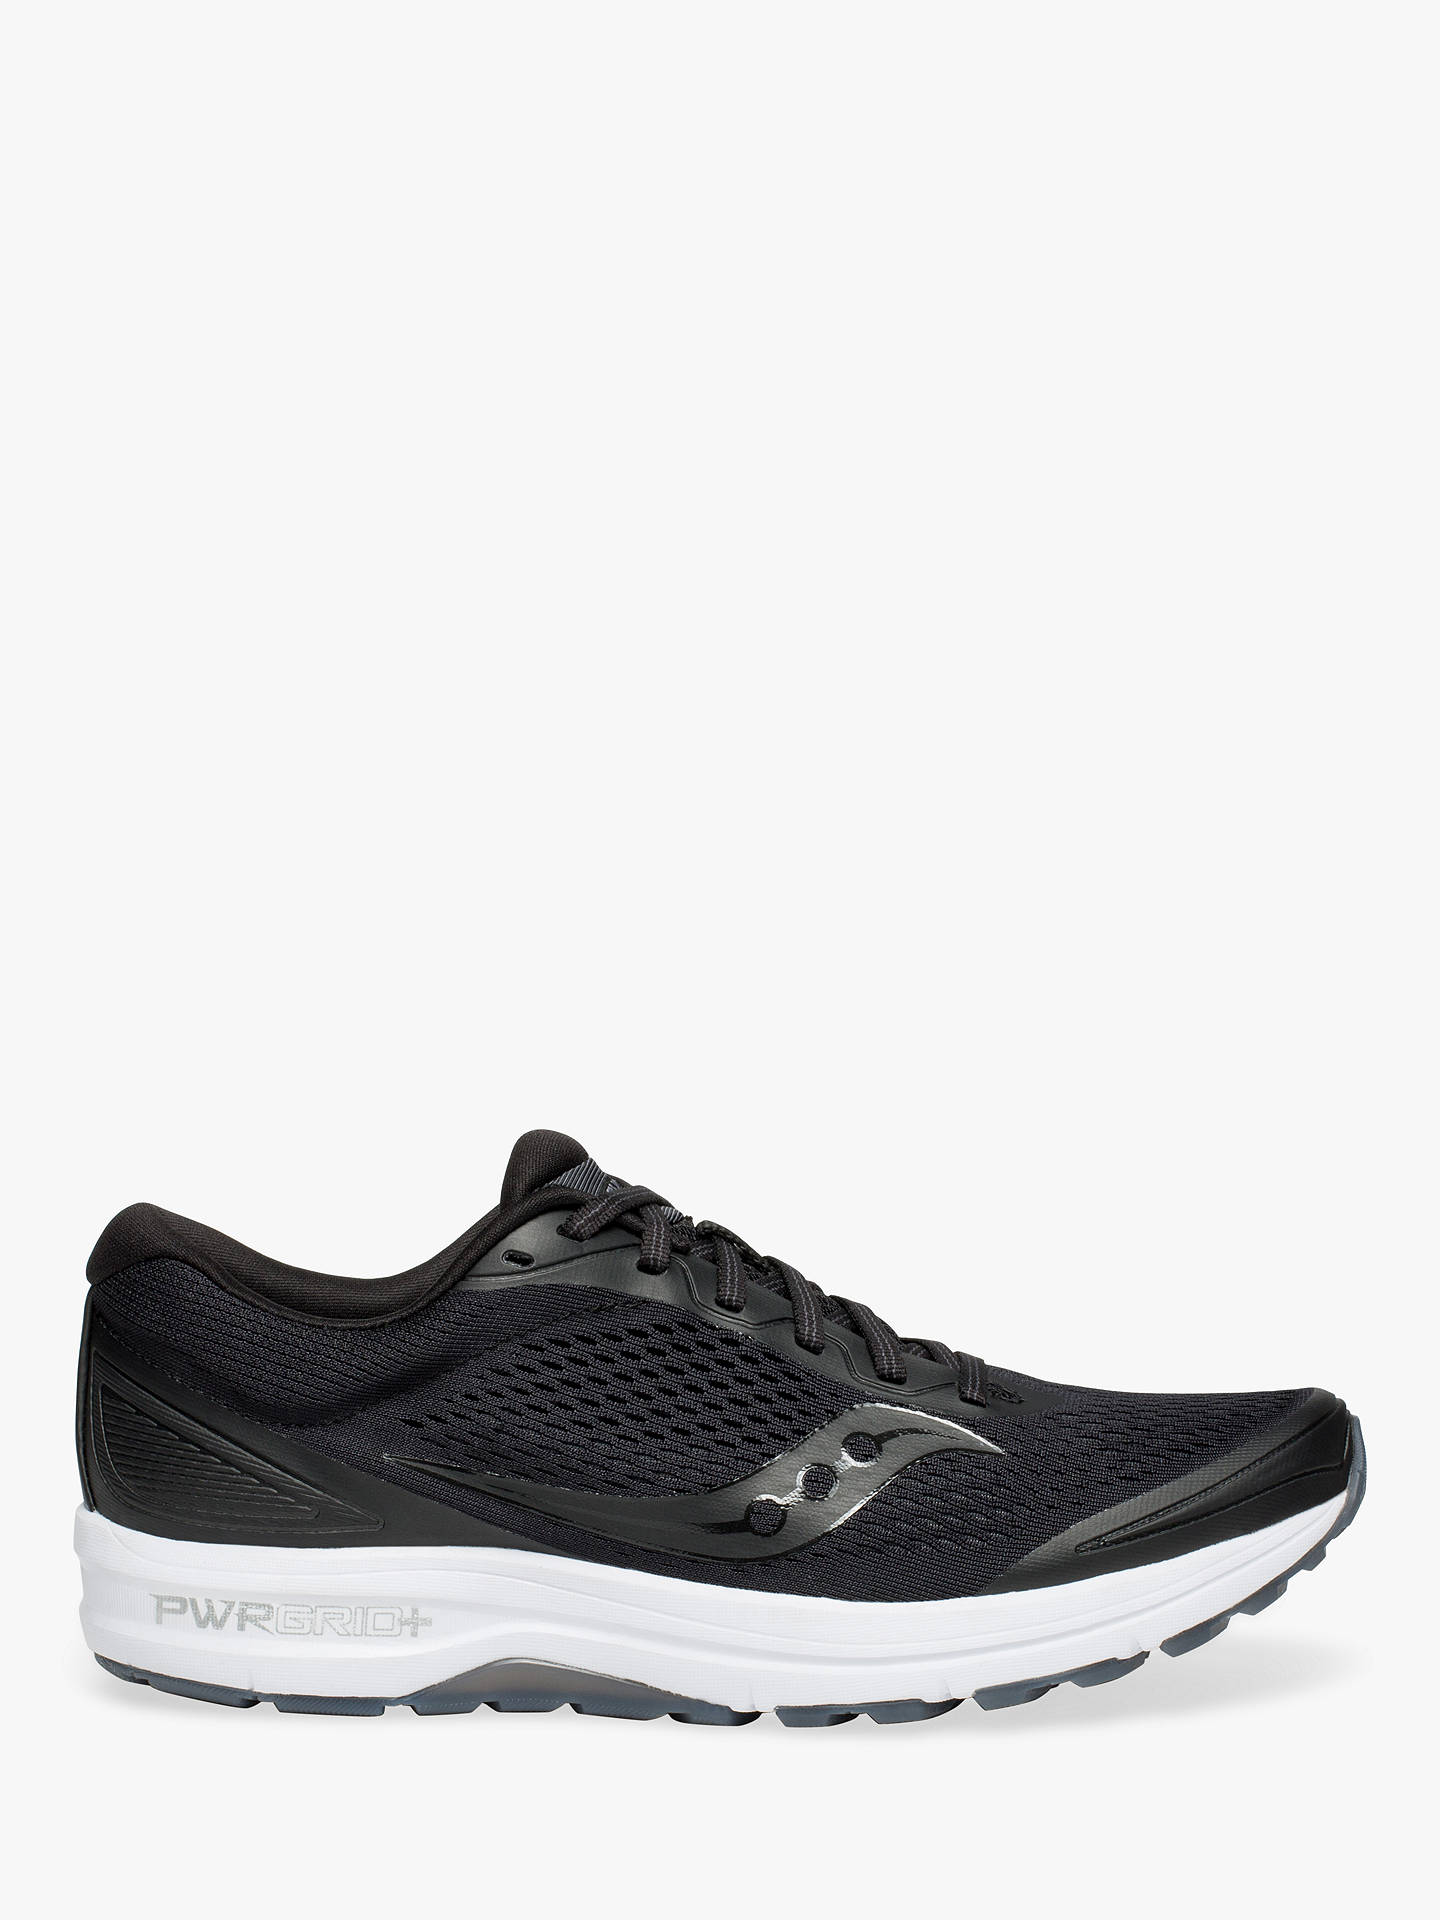 813273e2 Saucony Clarion Men's Running Shoes, Black